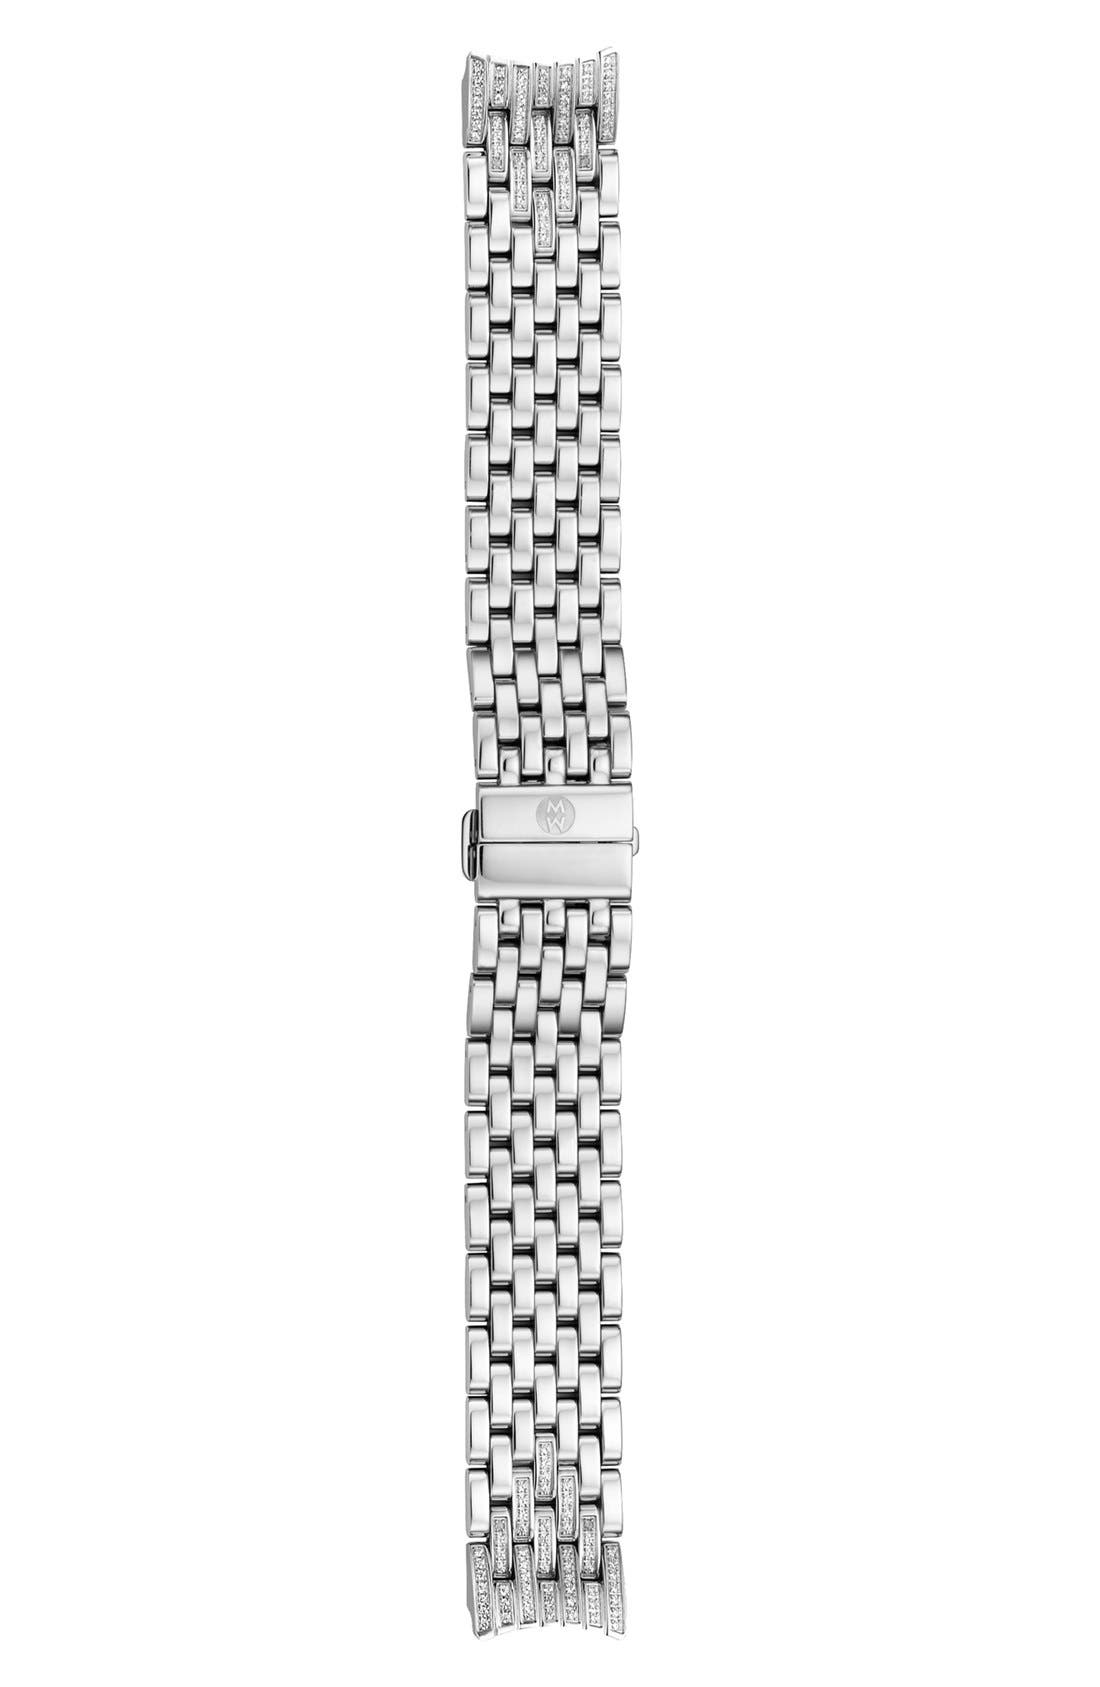 Main Image - MICHELE 'Serein' 18mm Diamond Bracelet Watch Band